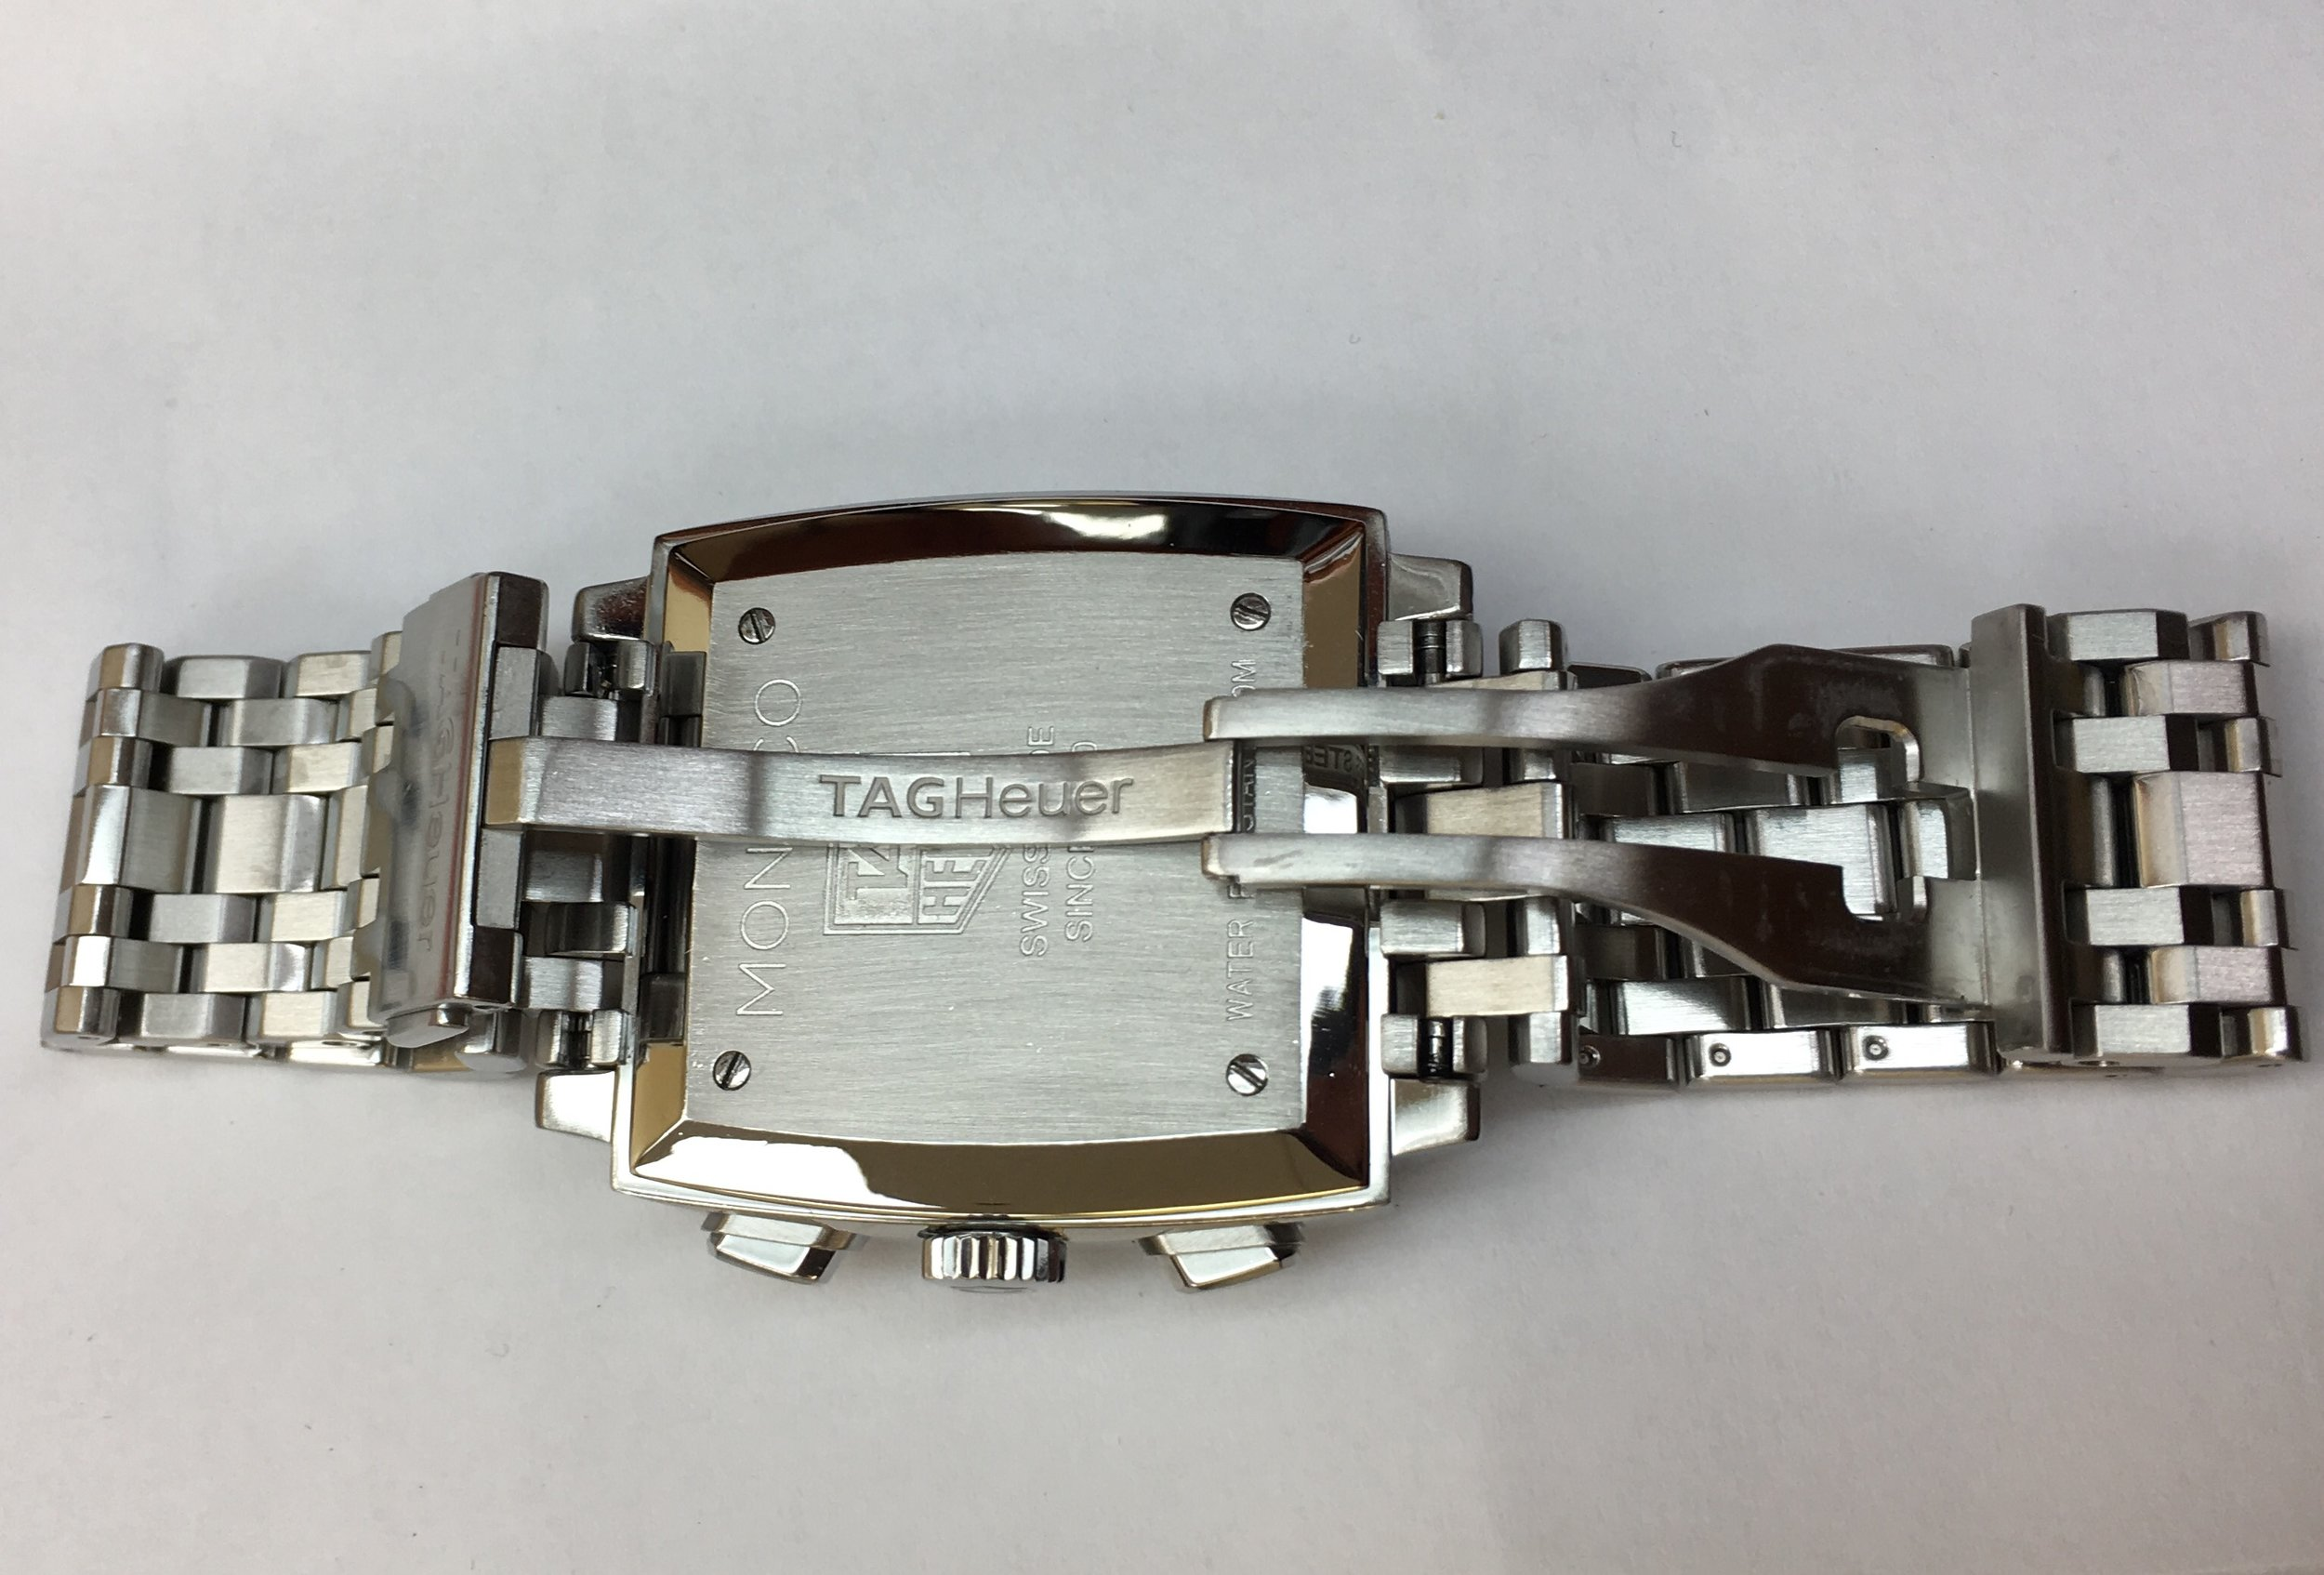 Watch Monaco Automatic Chronograph . Tampa Jewelry Store Watch Repair